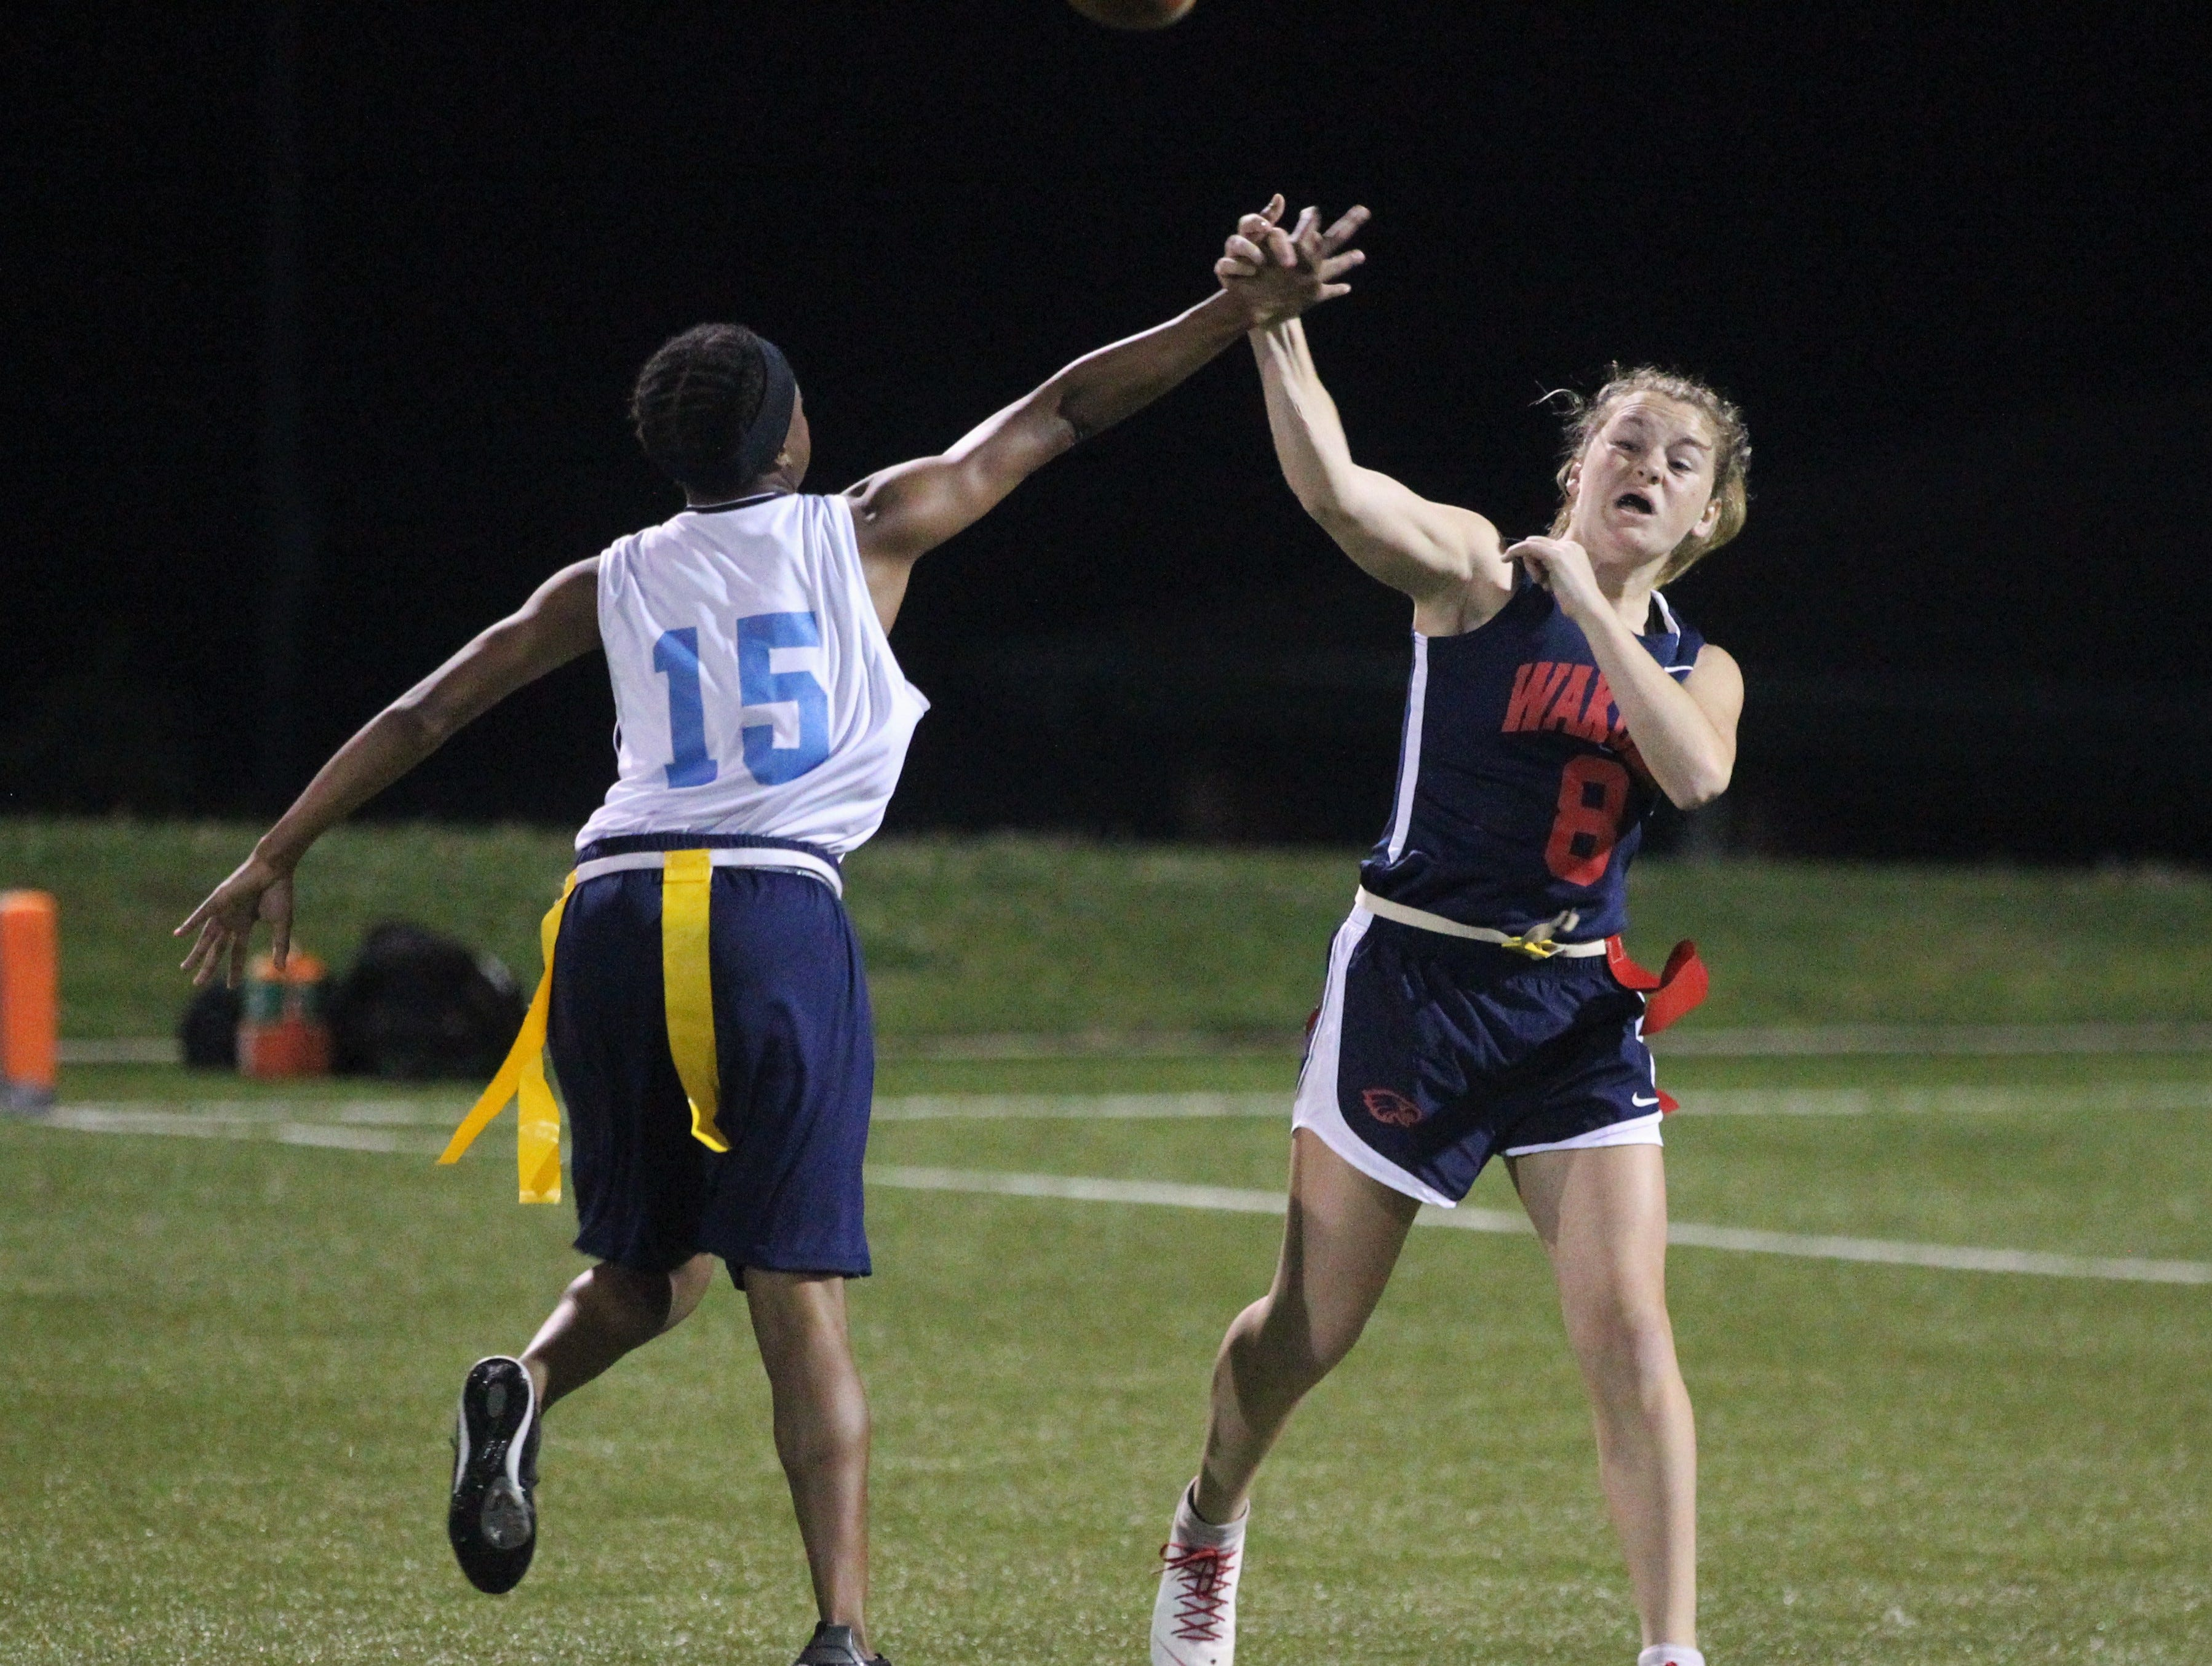 Wakulla quarterback Caitlyn Cason is hit as she throws a pass as the War Eagles and Gadsden County play during the 2019 flag football preseason classic at Florida A&M's intramural turf fields on Feb. 27, 2019.